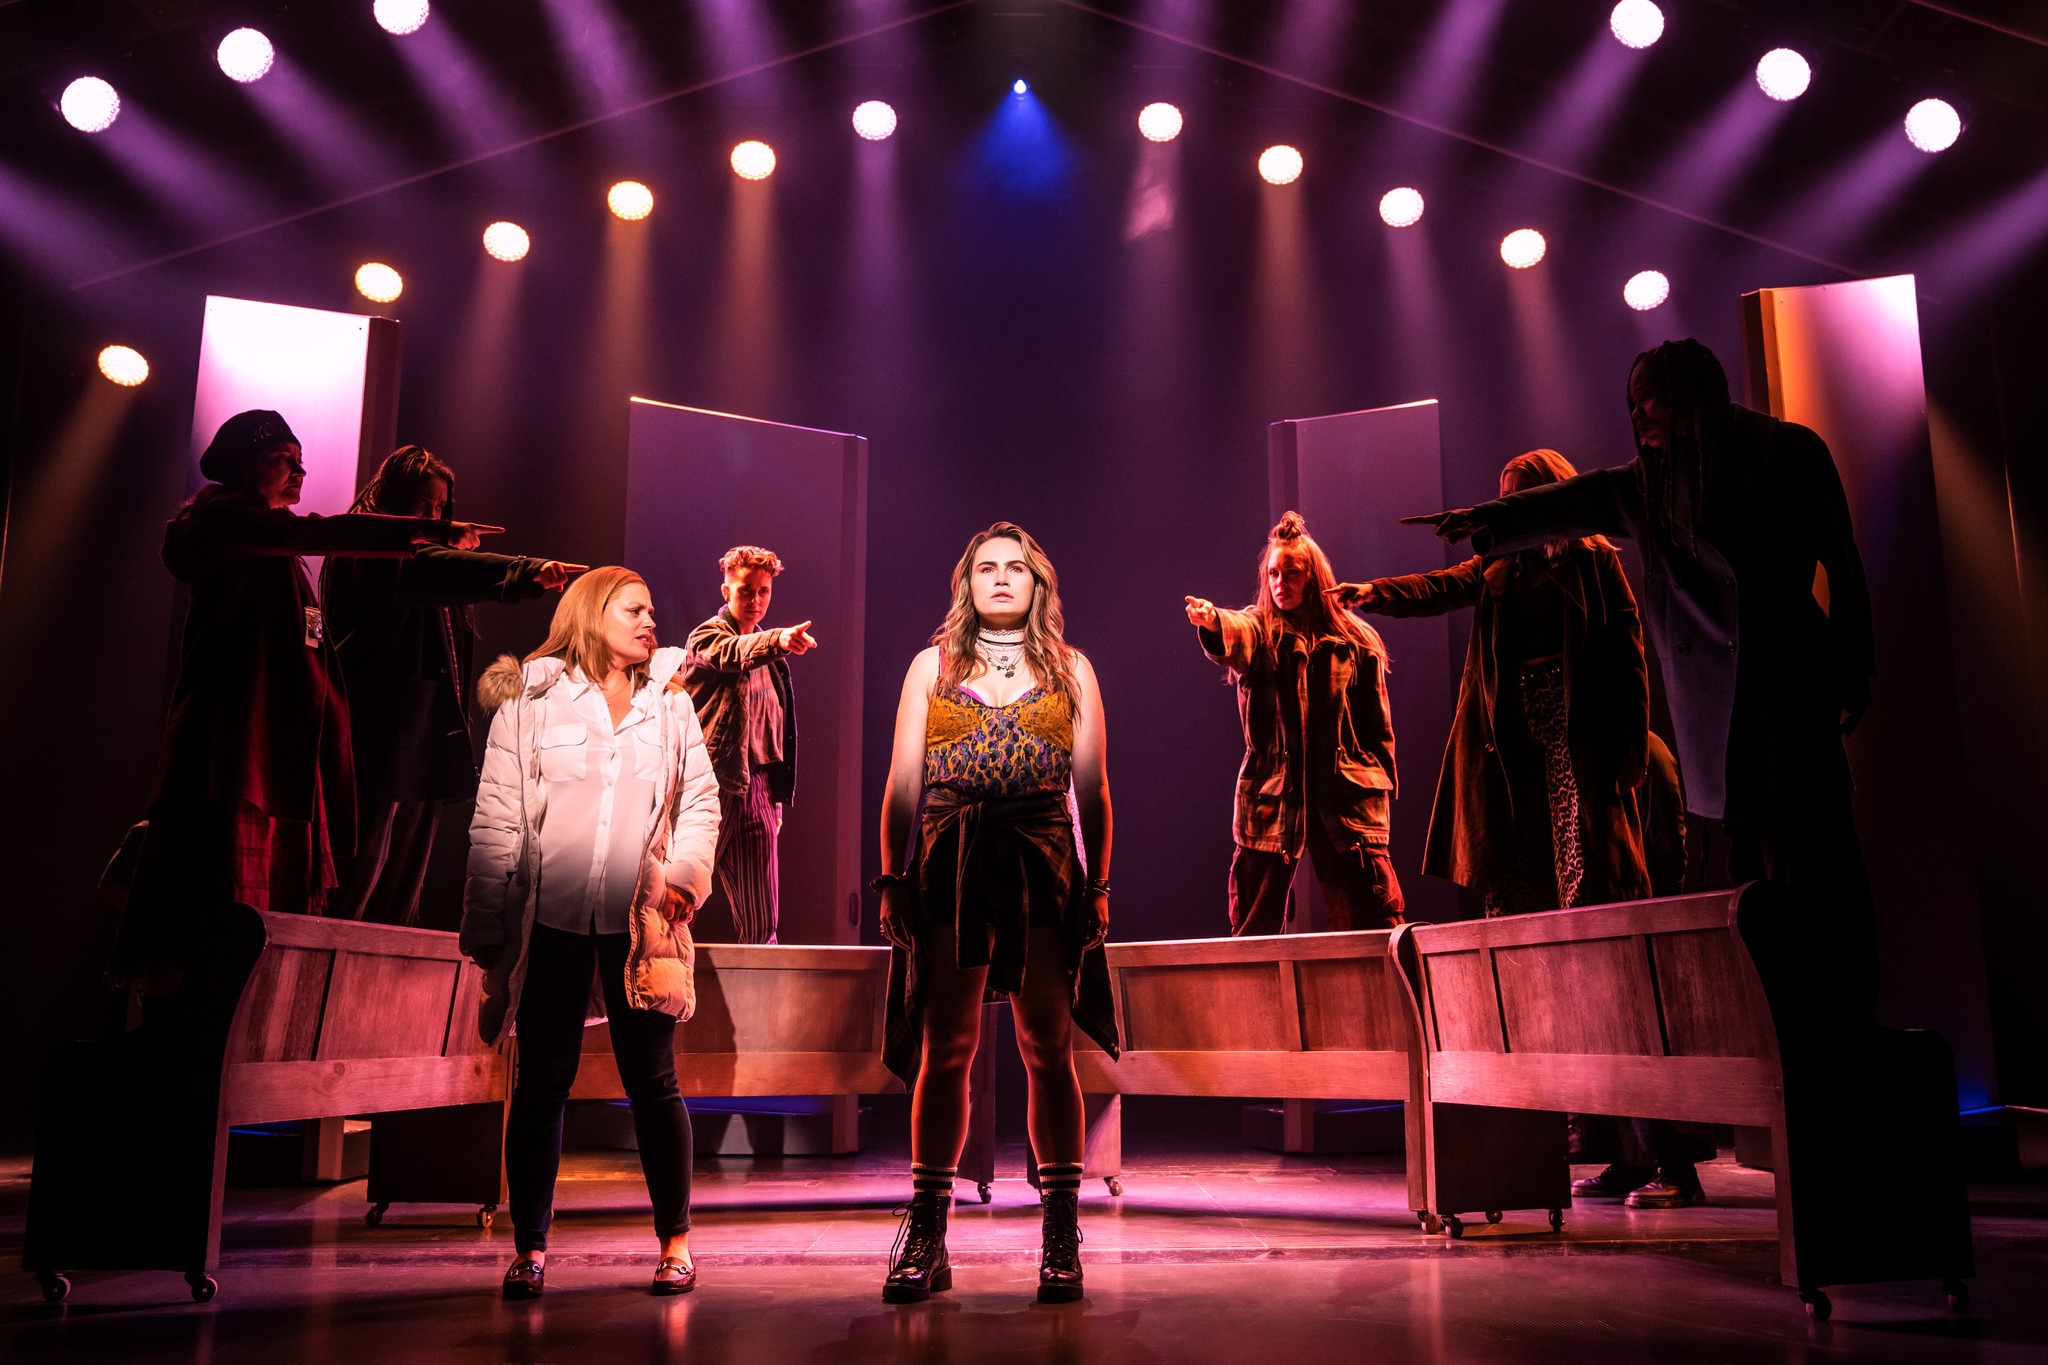 BROADWAY REVIEW: Overstuffed, simplistic Alanis Morissette musical 'Jagged Little Pill' is hard to swallow